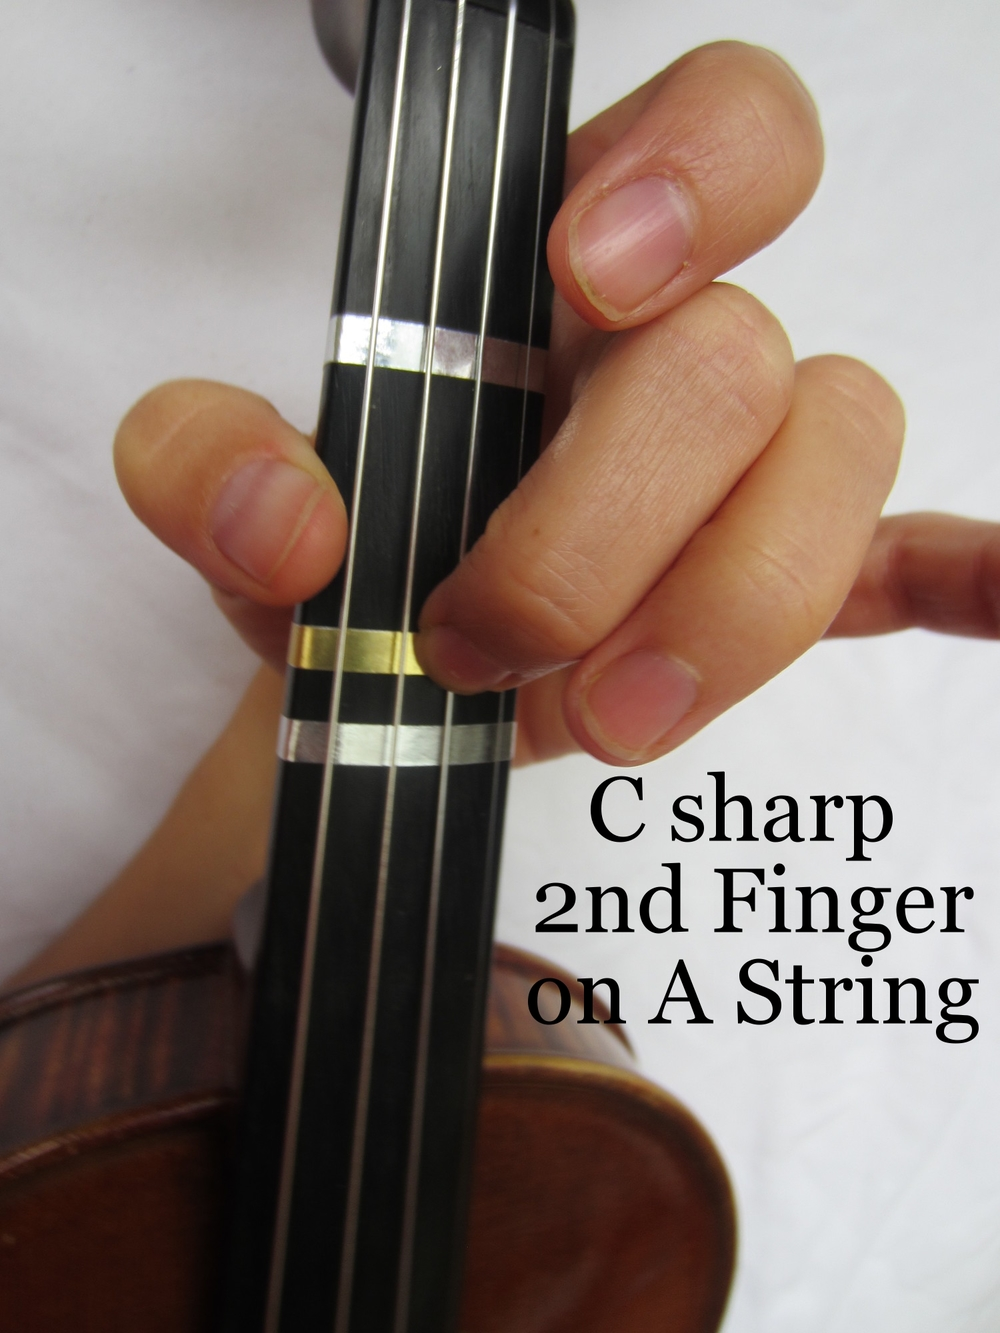 Violin Fingering C sharp on A.JPG